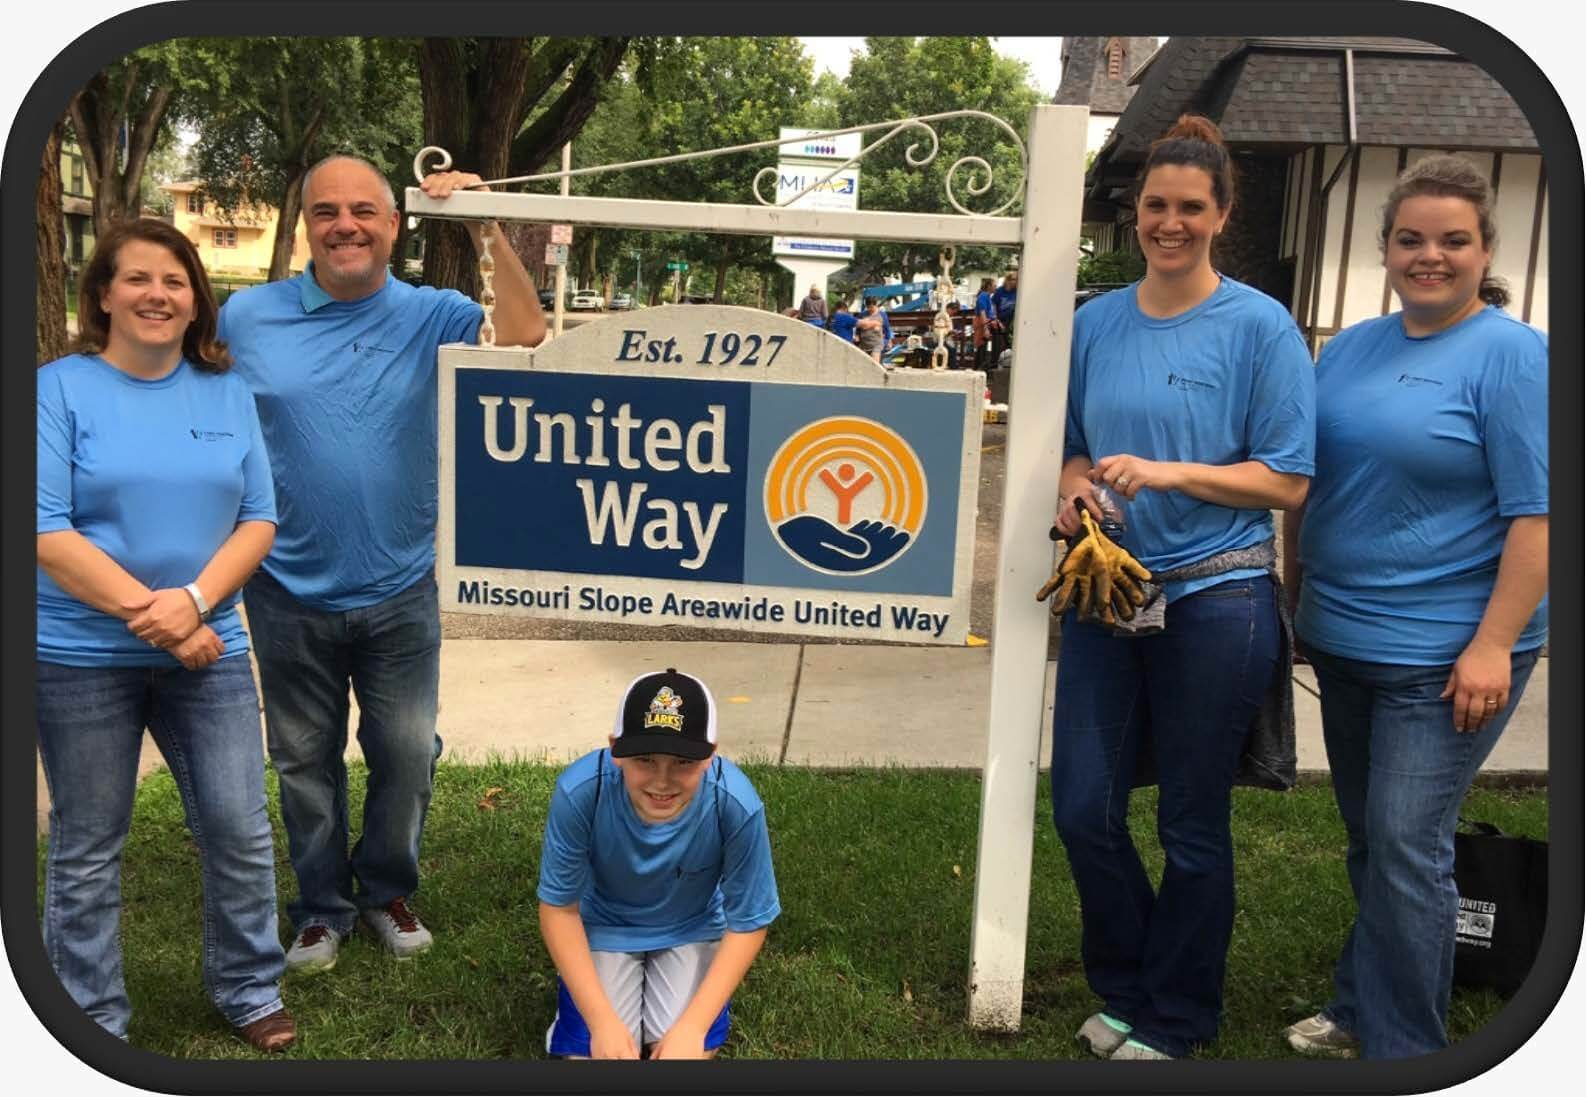 Employees standing by a United Way sign